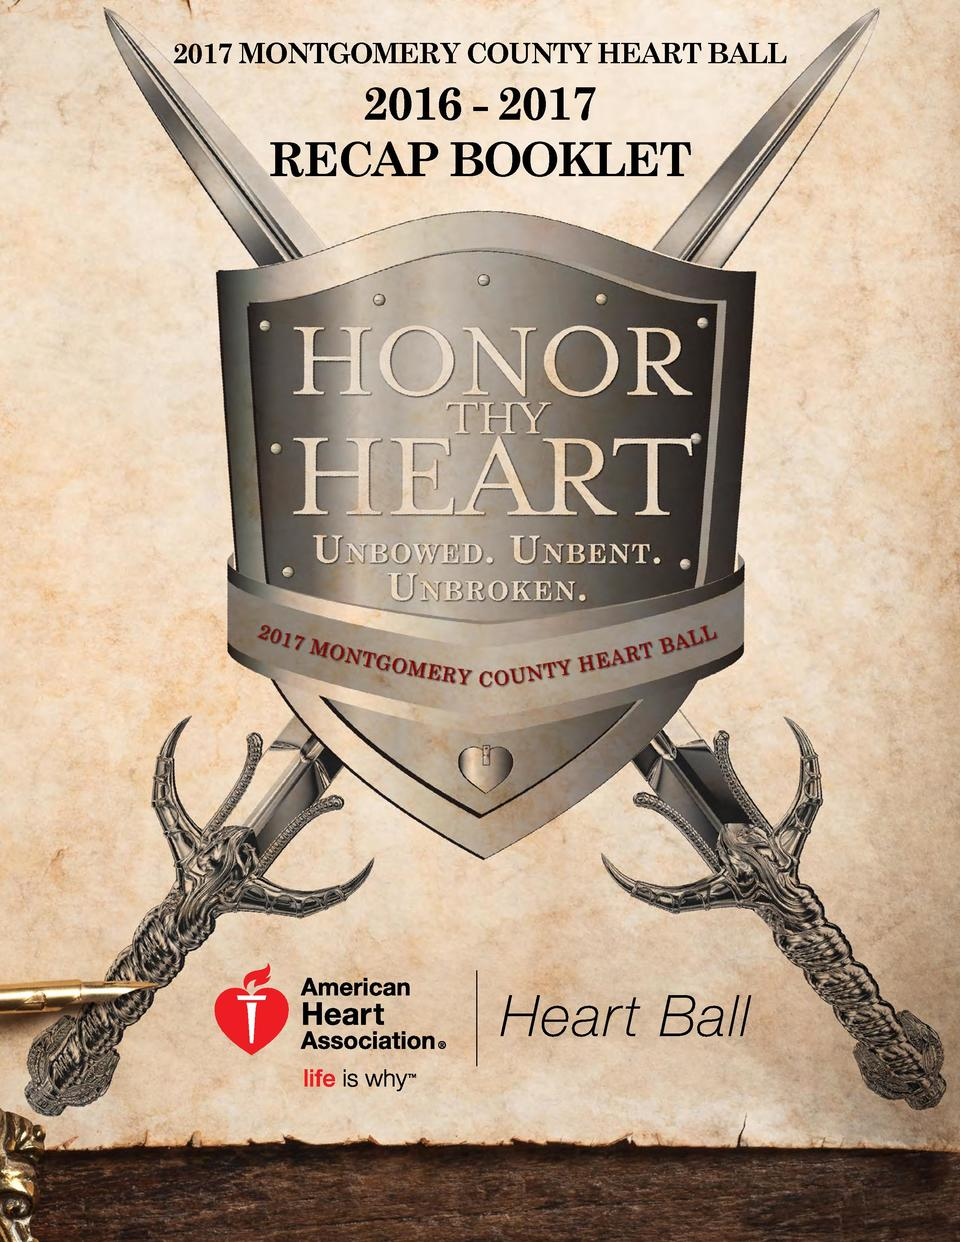 2017 MONTGOMERY COUNTY HEART BALL  2016 - 2017 RECAP BOOKLET